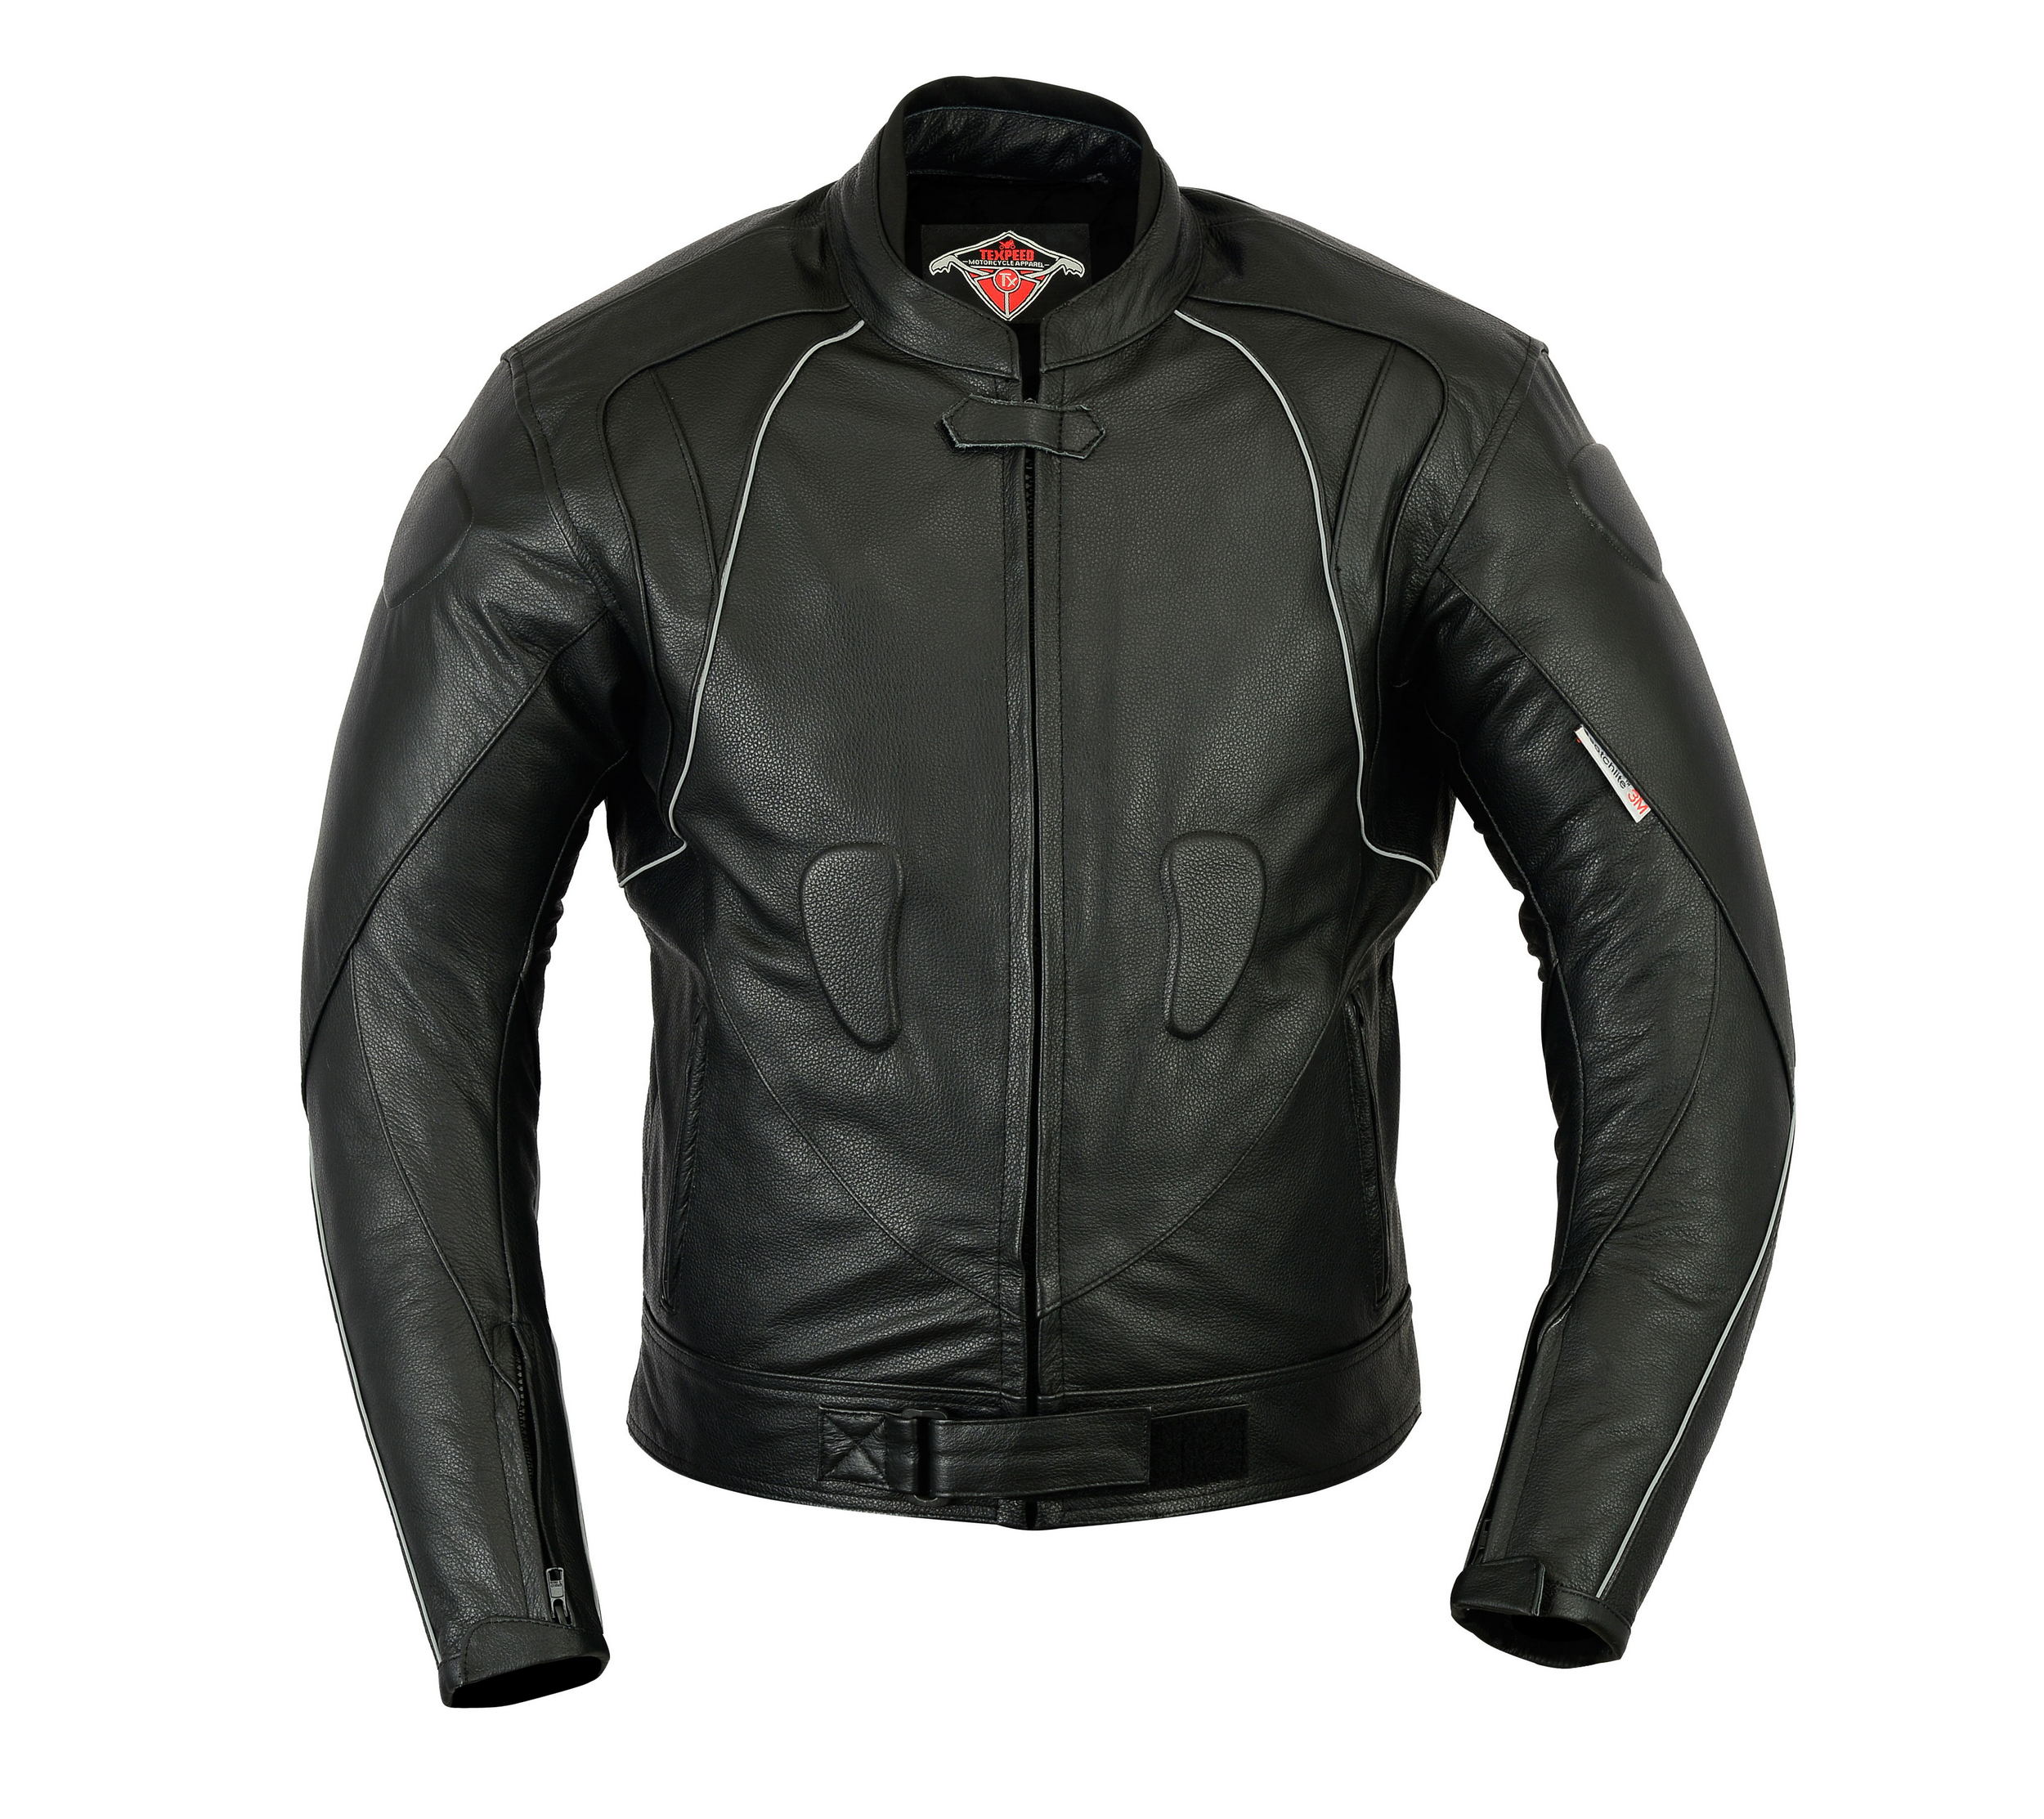 Ad leather racing jackets